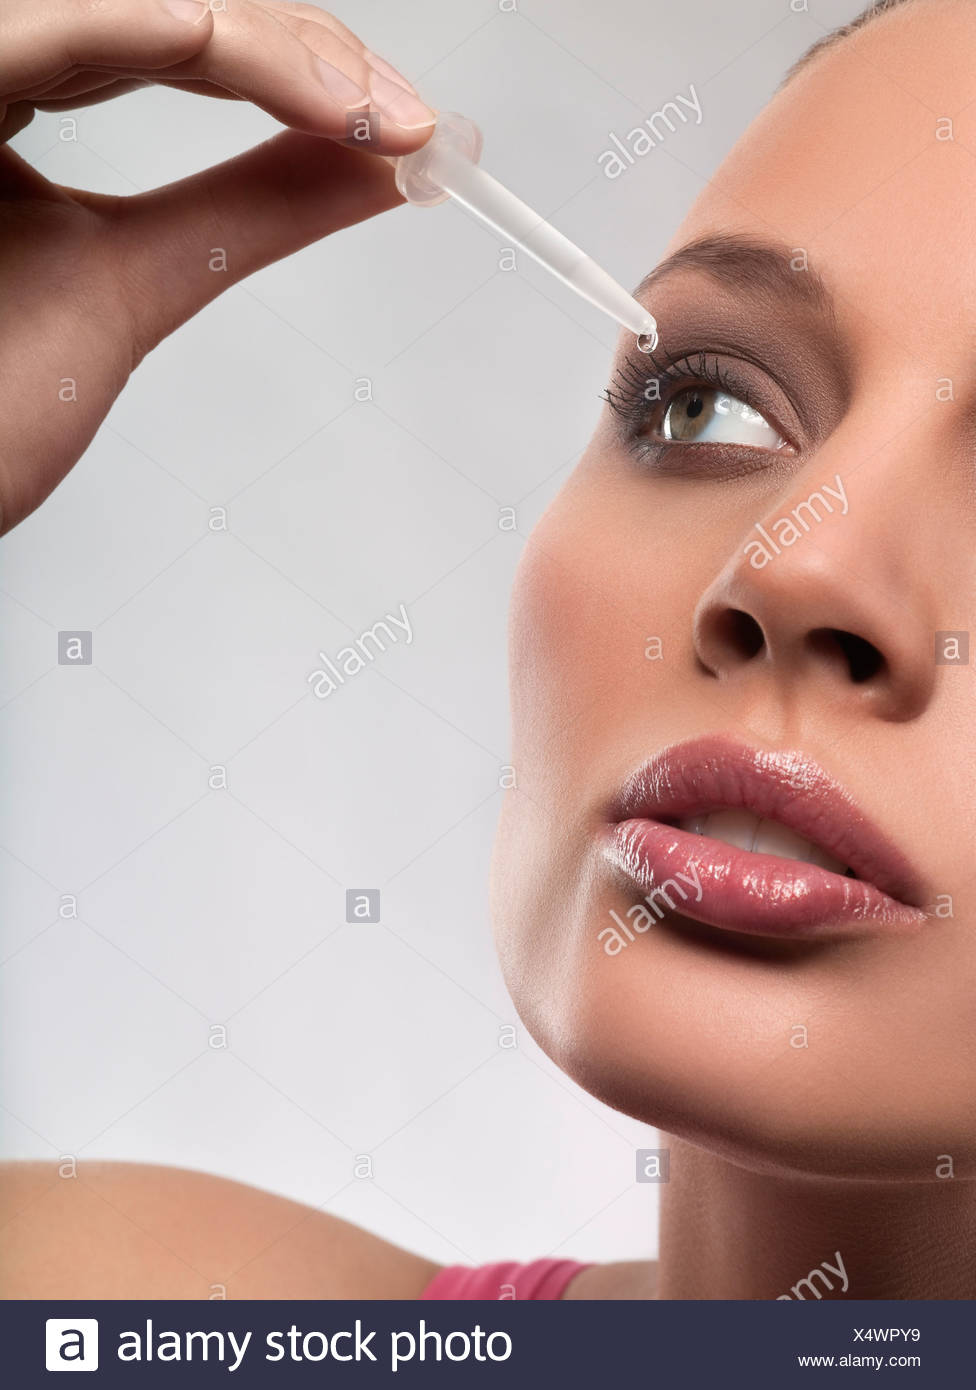 Young woman putting eye drops in eye, studio shot - Stock Image